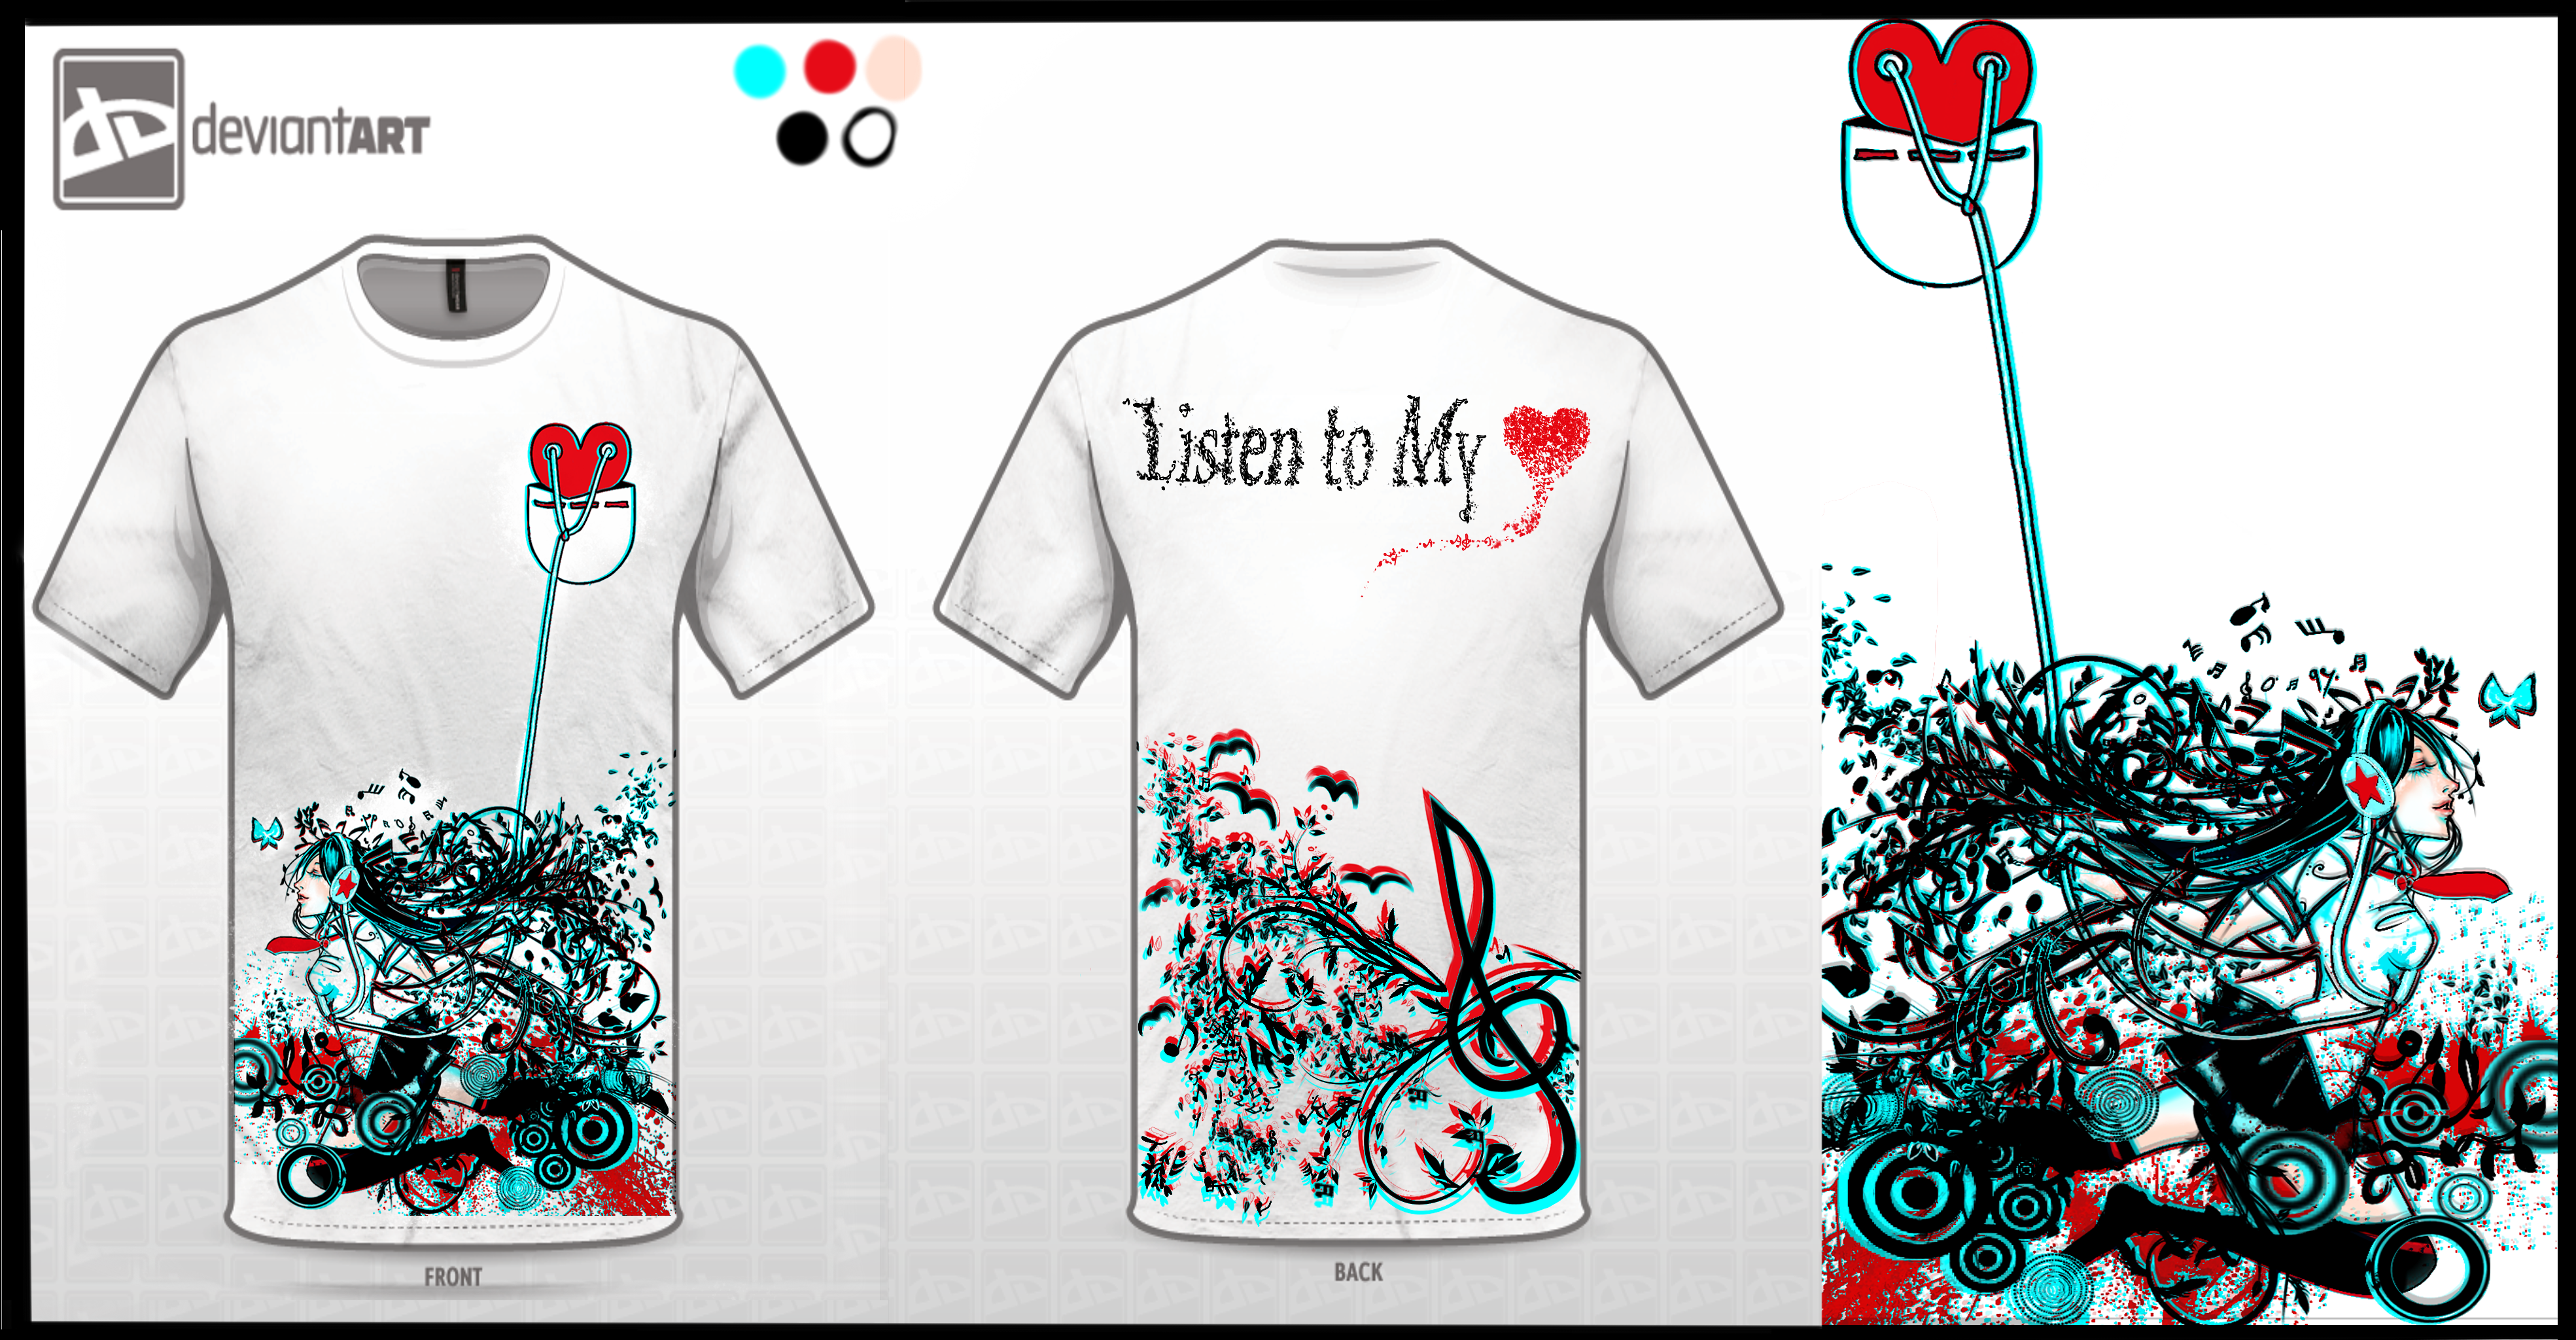 Listen to my heart t shirt design by sangrde on Music shirt design ideas